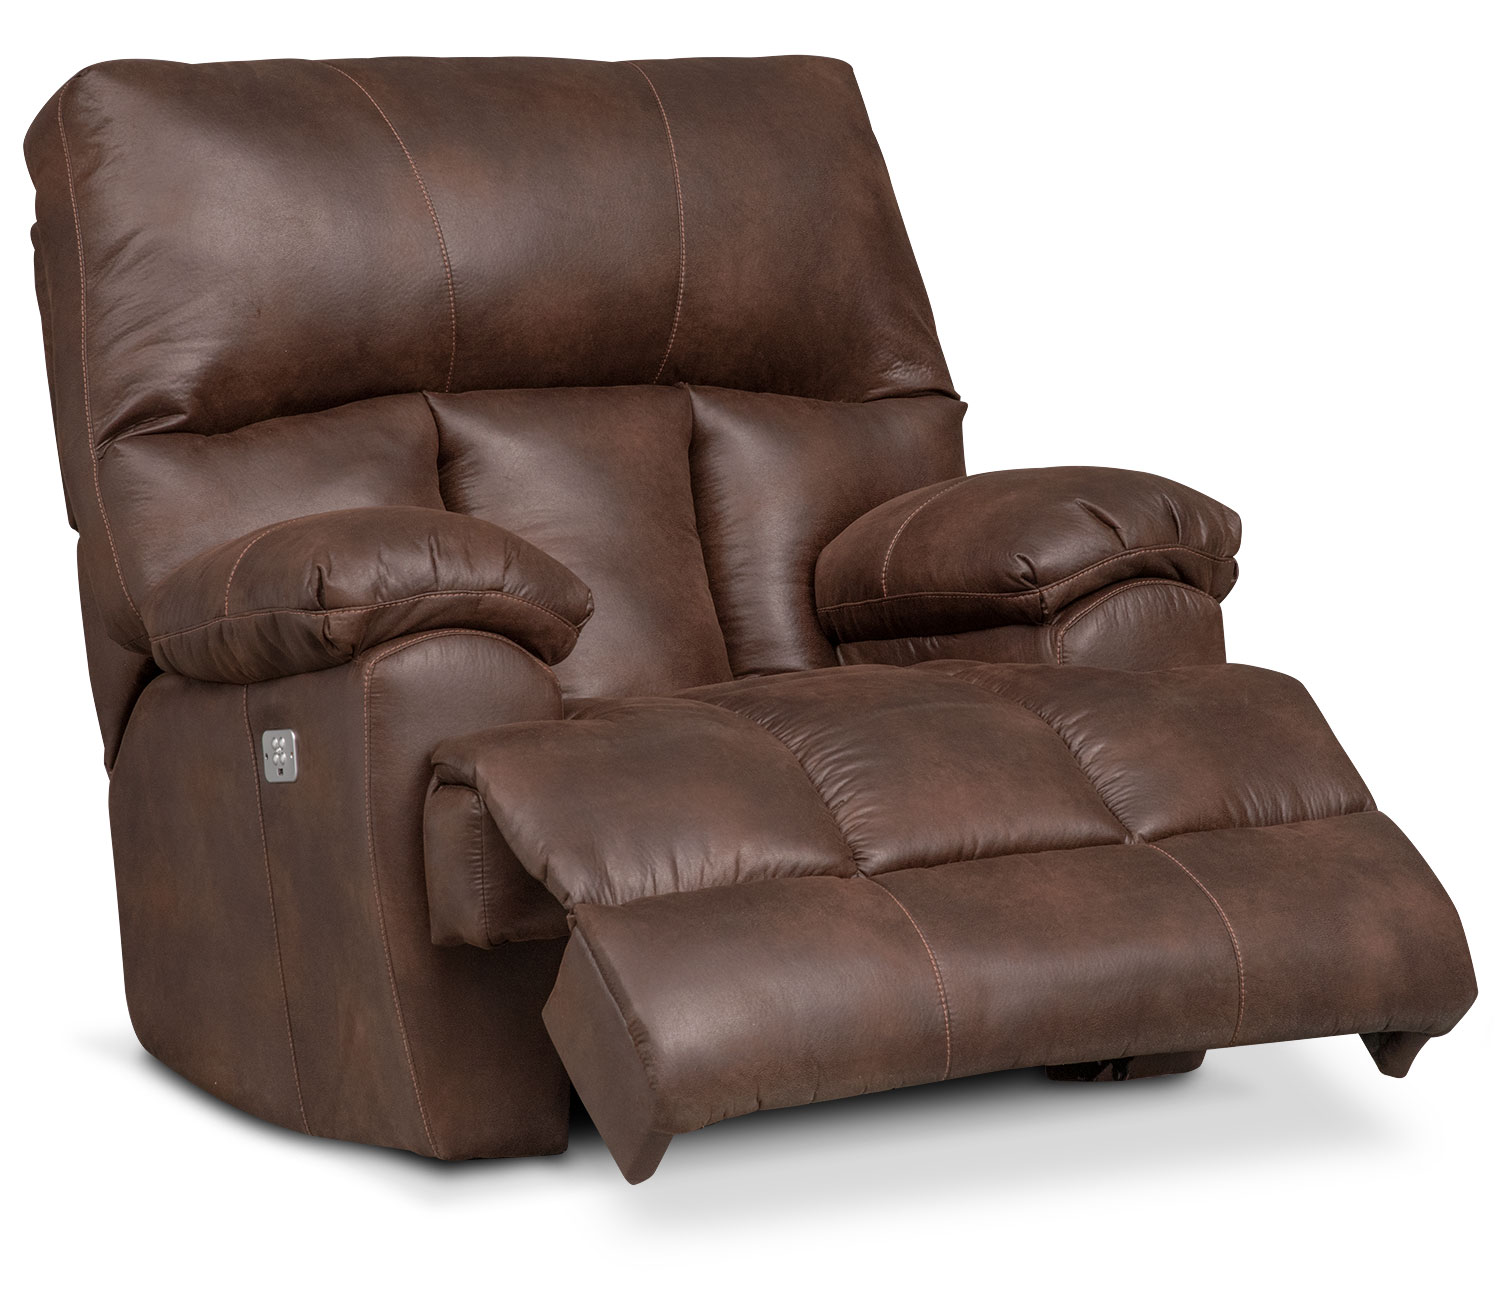 Bronco Dual Power Recliner - Espresso by One80  sc 1 st  Value City Furniture & Bronco Dual Power Recliner - Espresso | Value City Furniture islam-shia.org